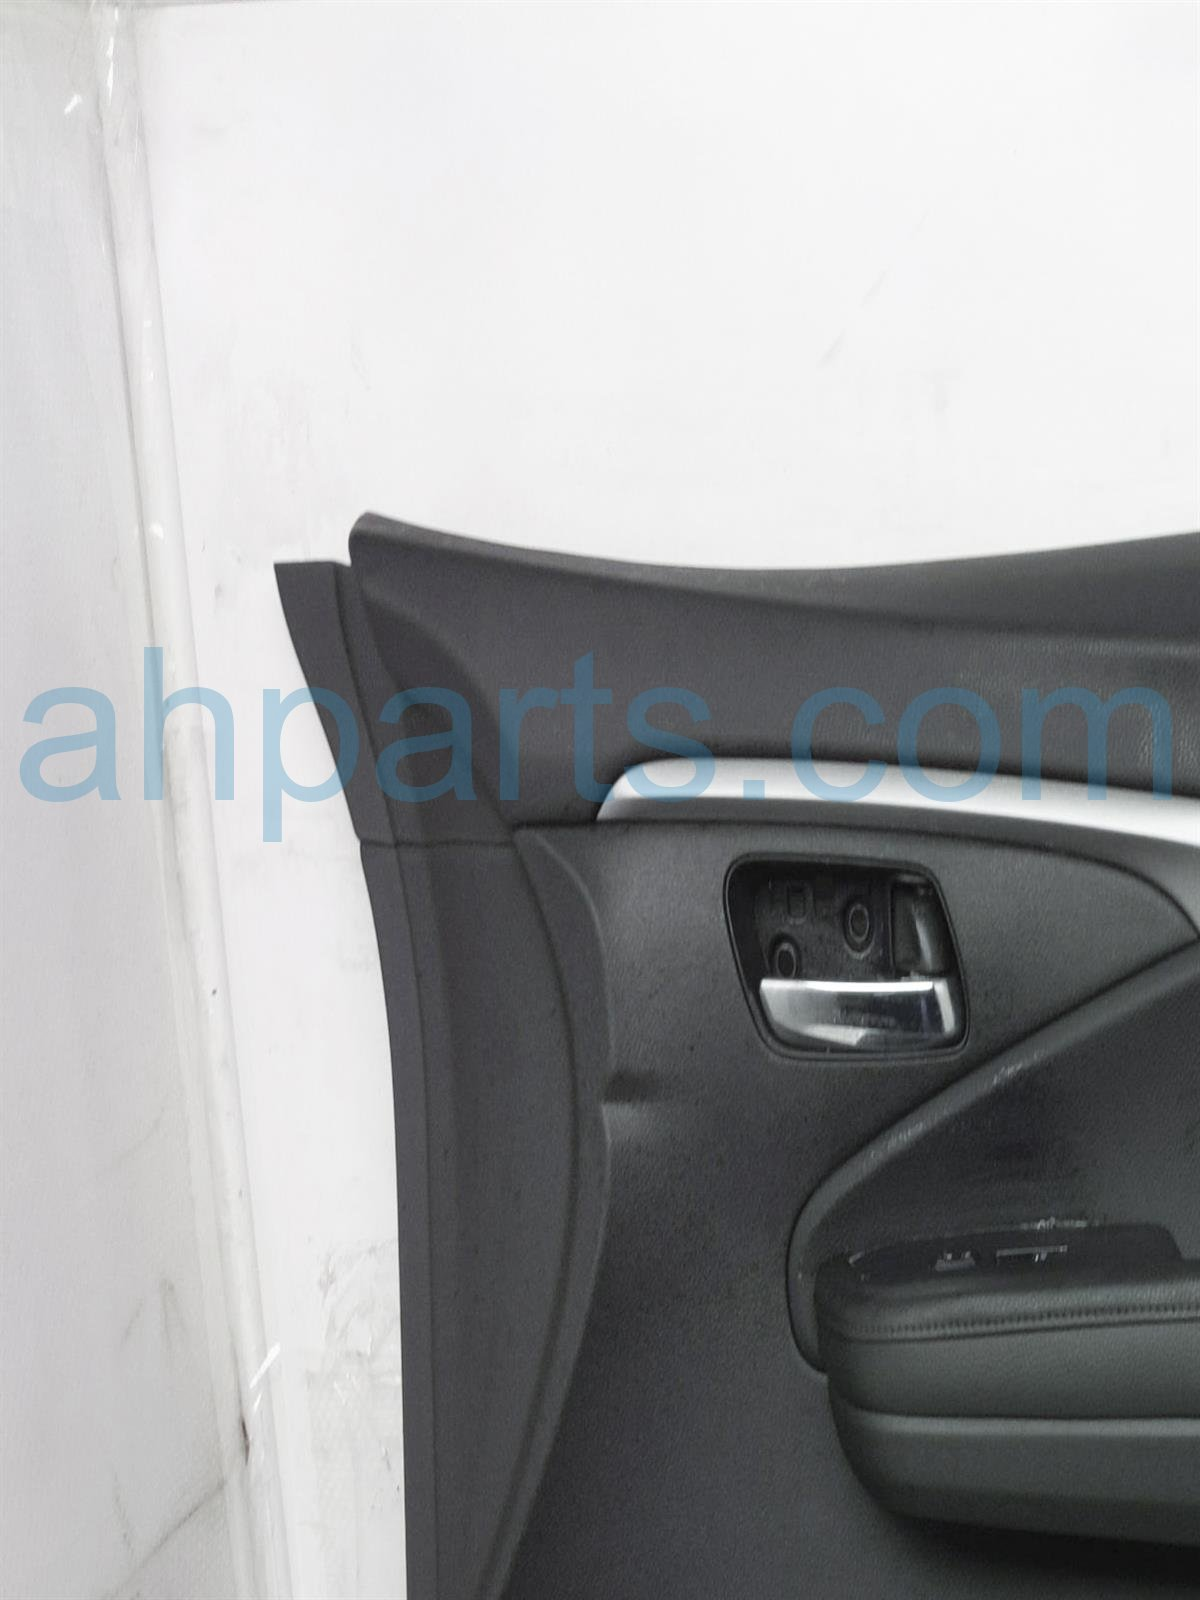 2019 Honda Passport Trim / Liner Front Passenger Interior Door Panel   Black 83501 TG7 A34ZB Replacement